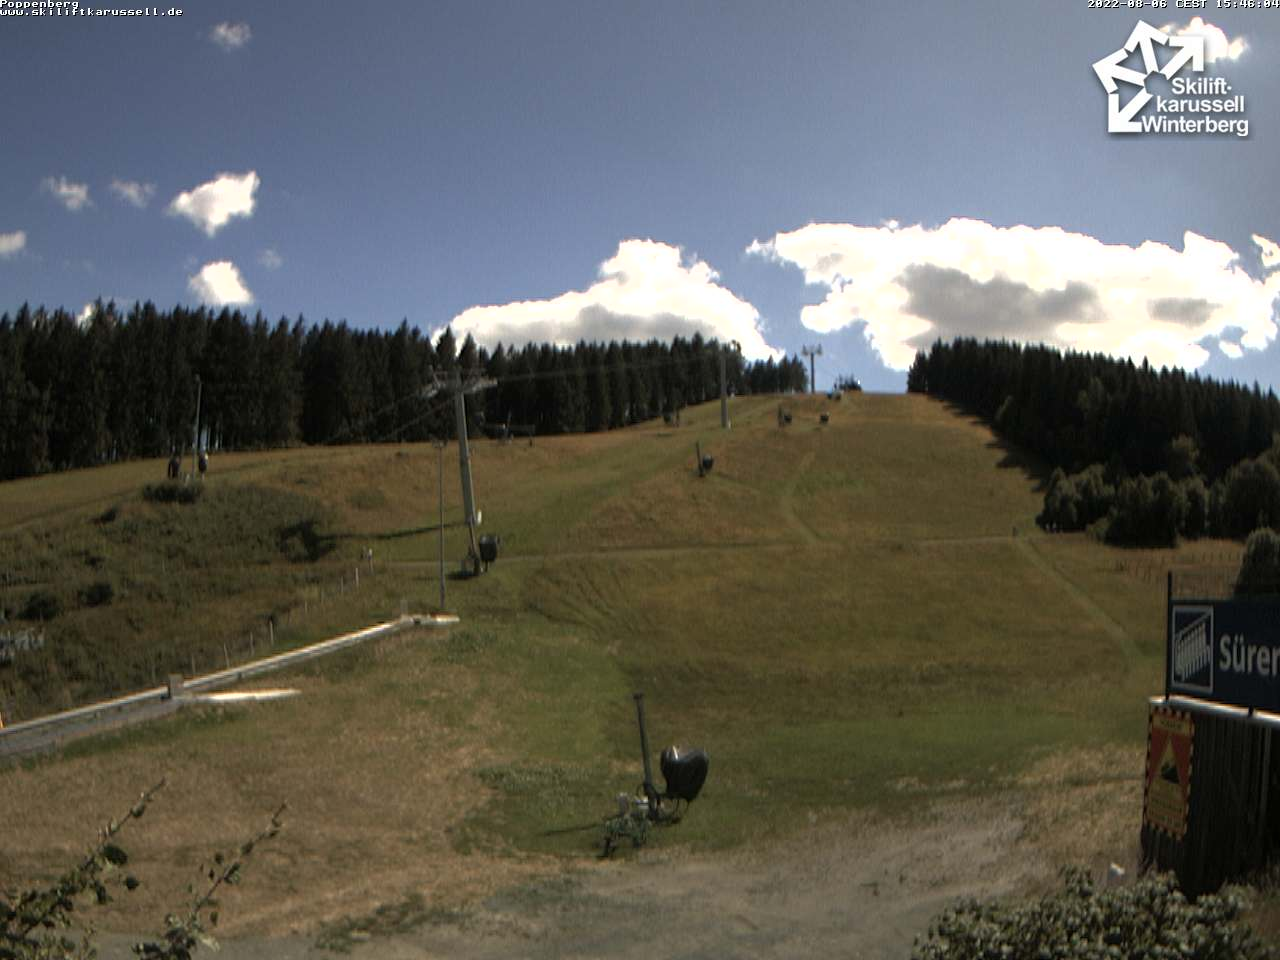 Webcam Skiliftkarussell Winterberg